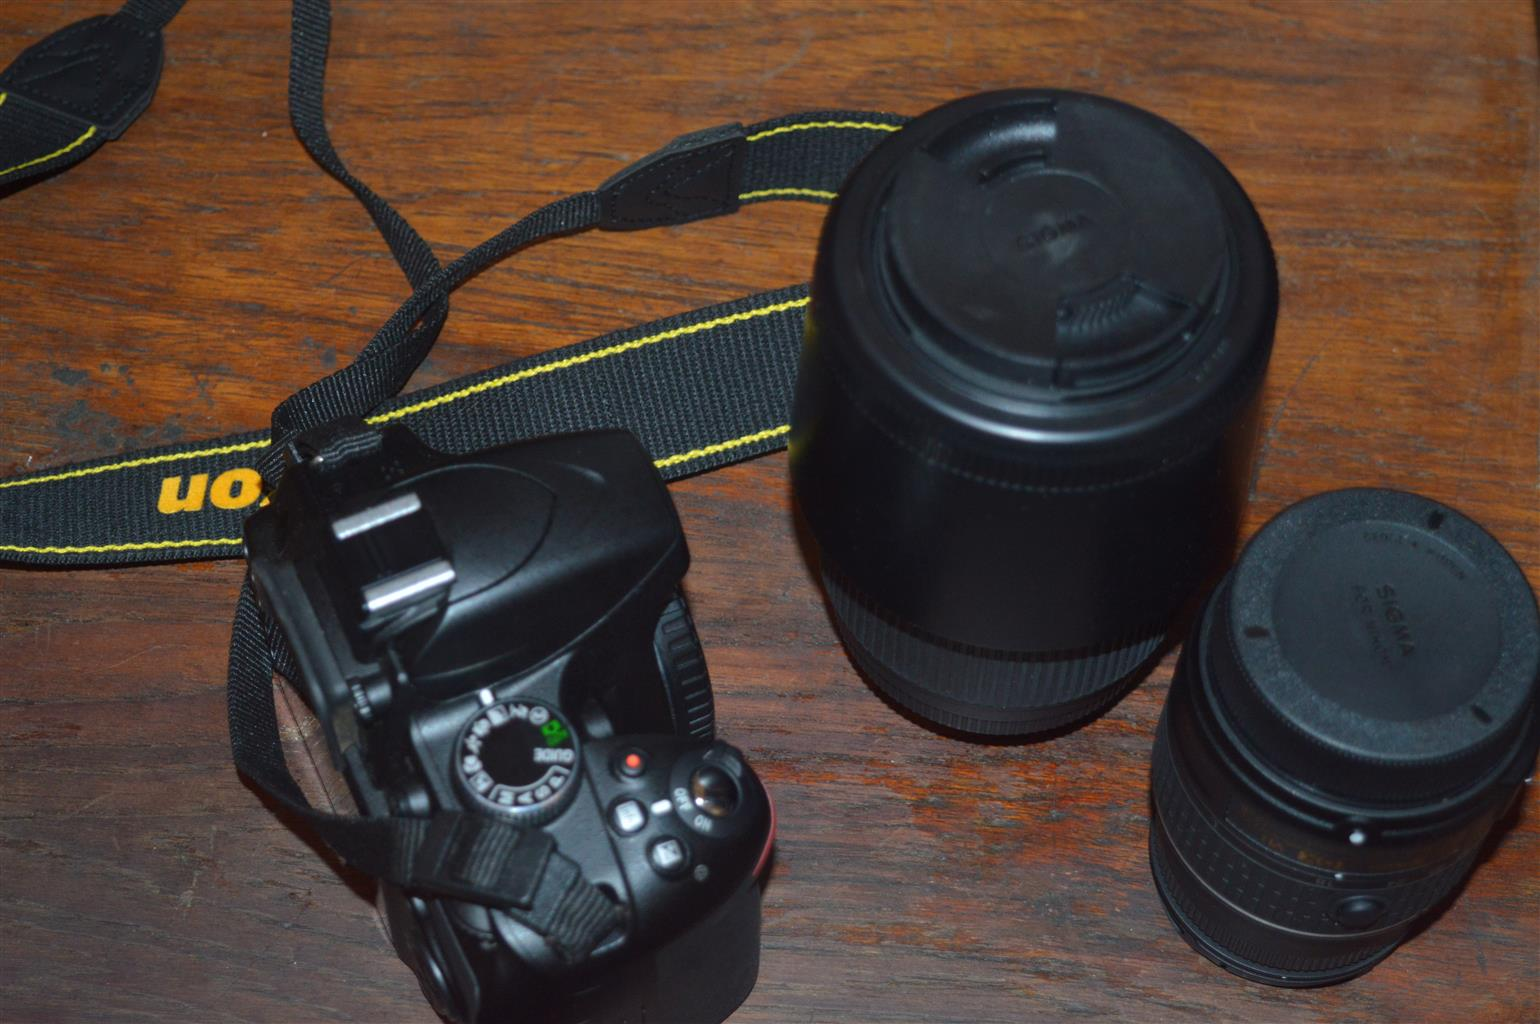 Bargain!! Nikon D3200 Camera with 18-55mm and 70-300mm